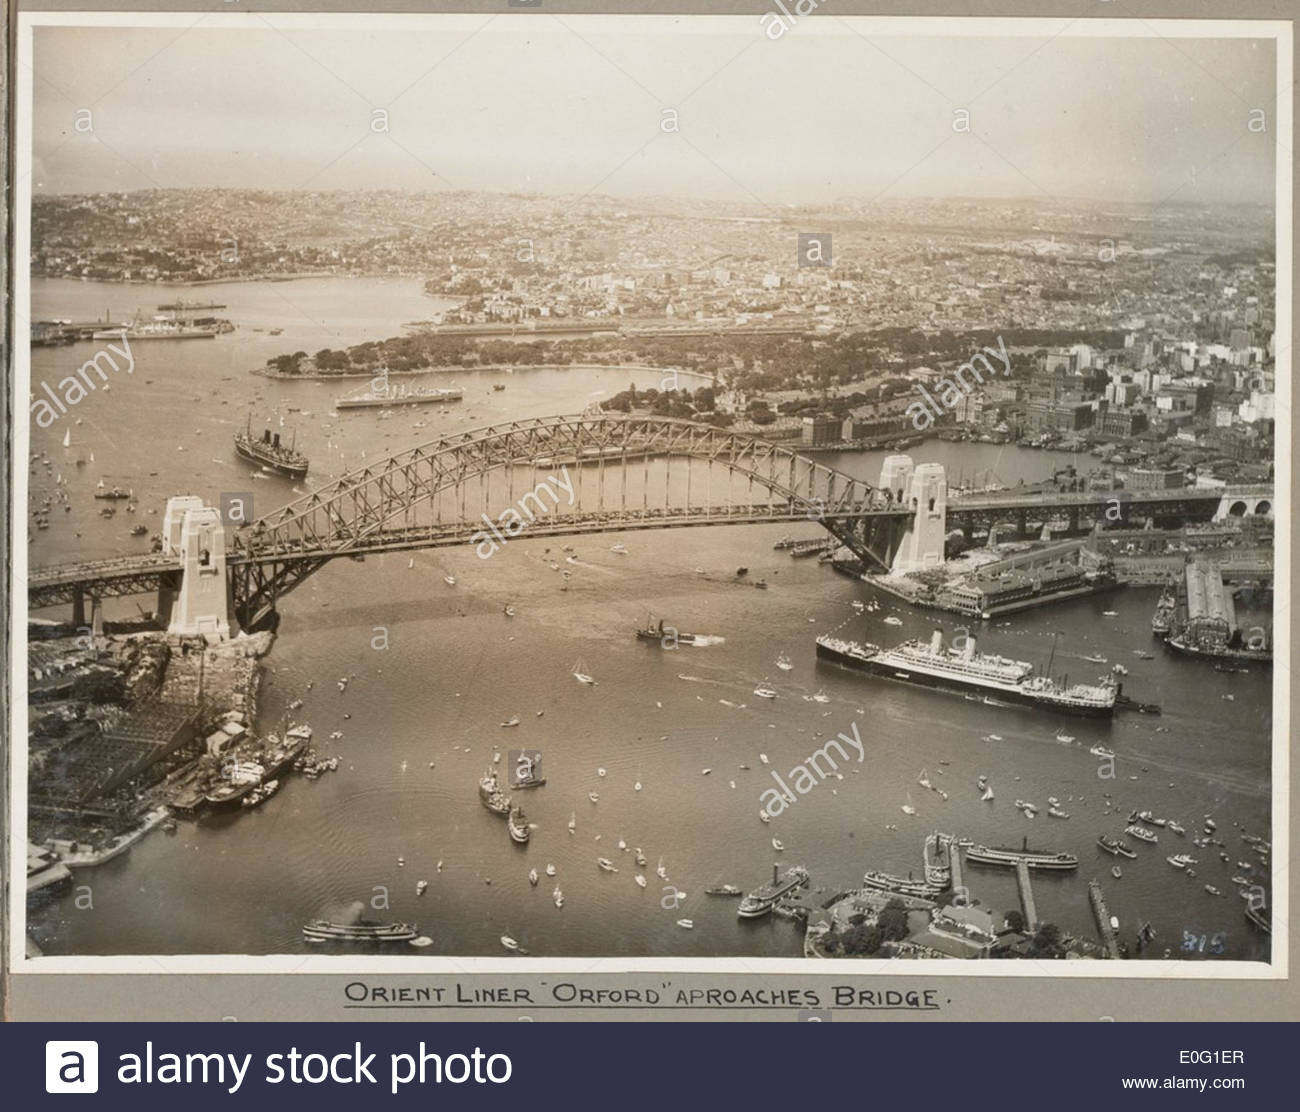 Orient liner SS Orford passing under Sydney Harbour Bridge, 19 March 1932 - Stock Image